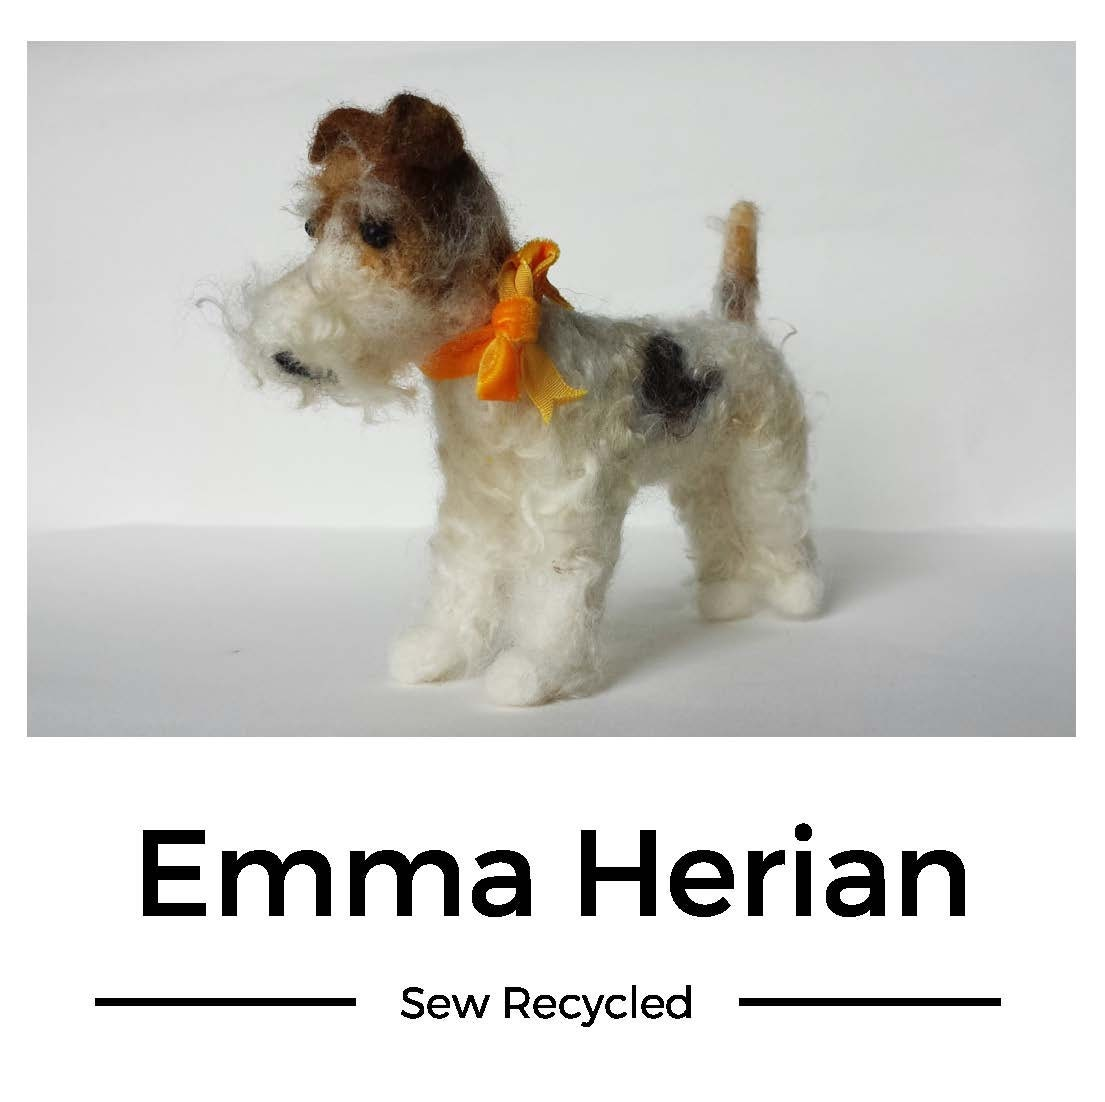 Emma Herian Textile Artist Feature Writer & Tutor by SewRecycled